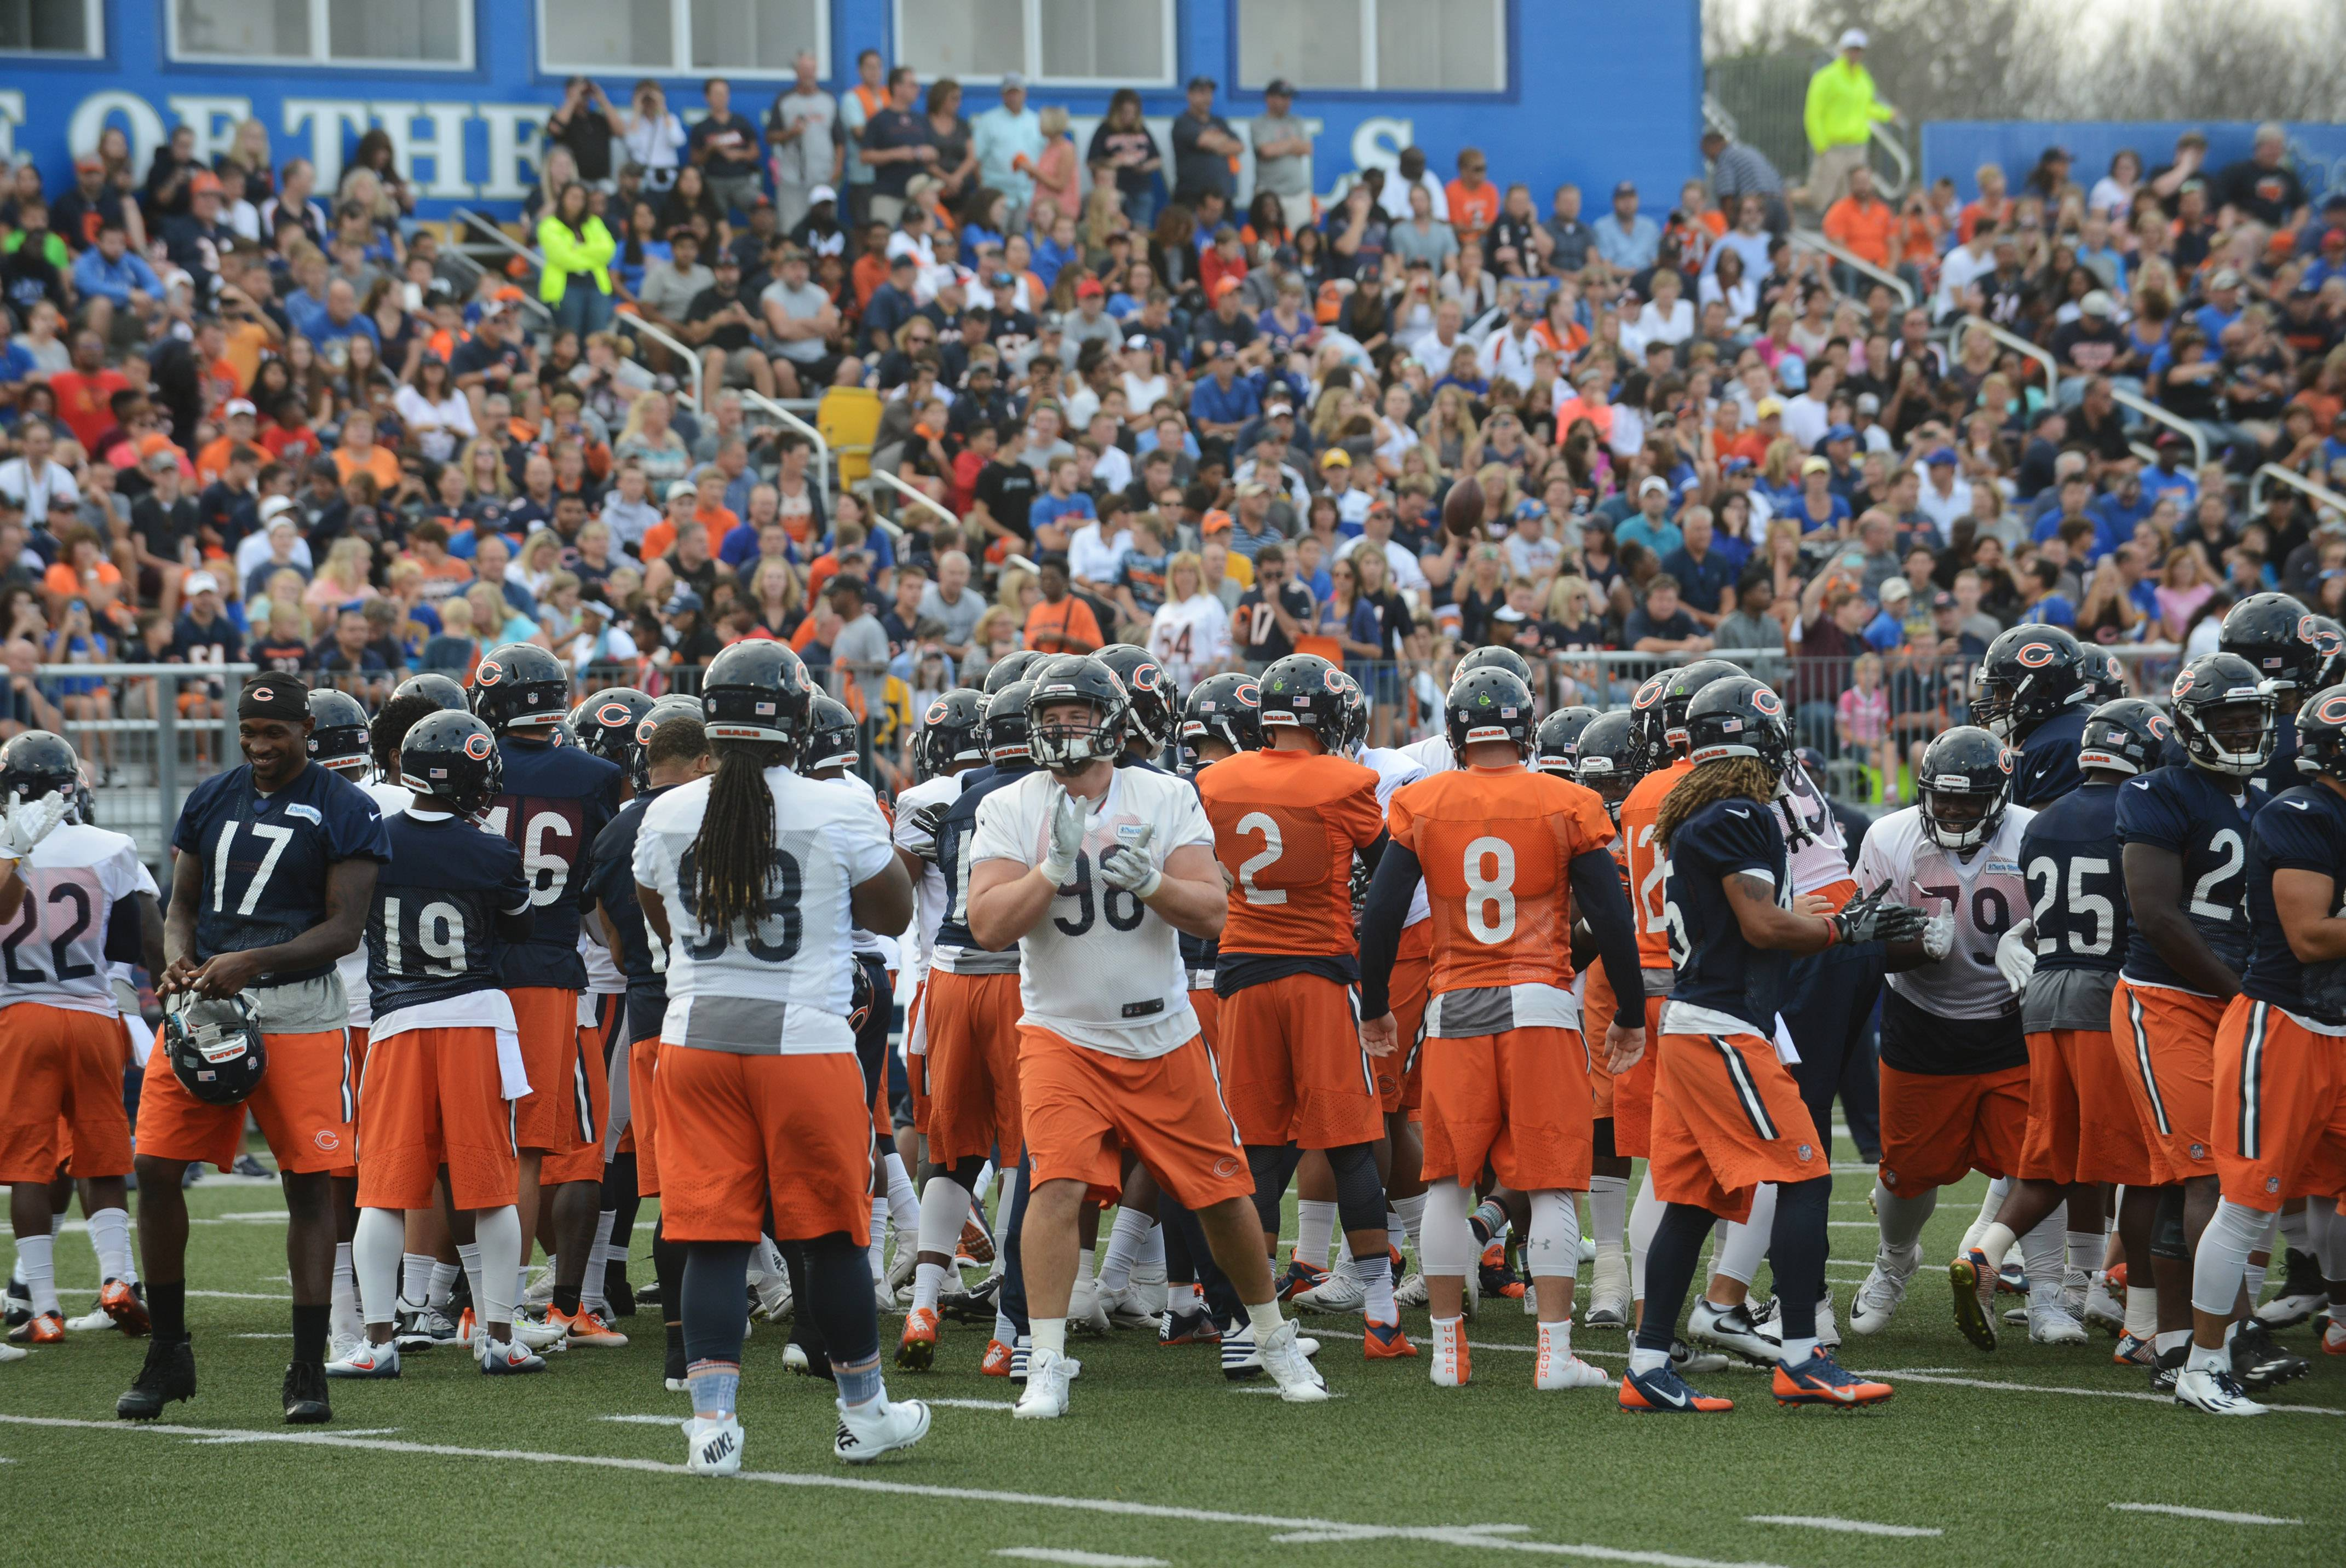 Tickets for Chicago Bears practice at Prospect High go quickly